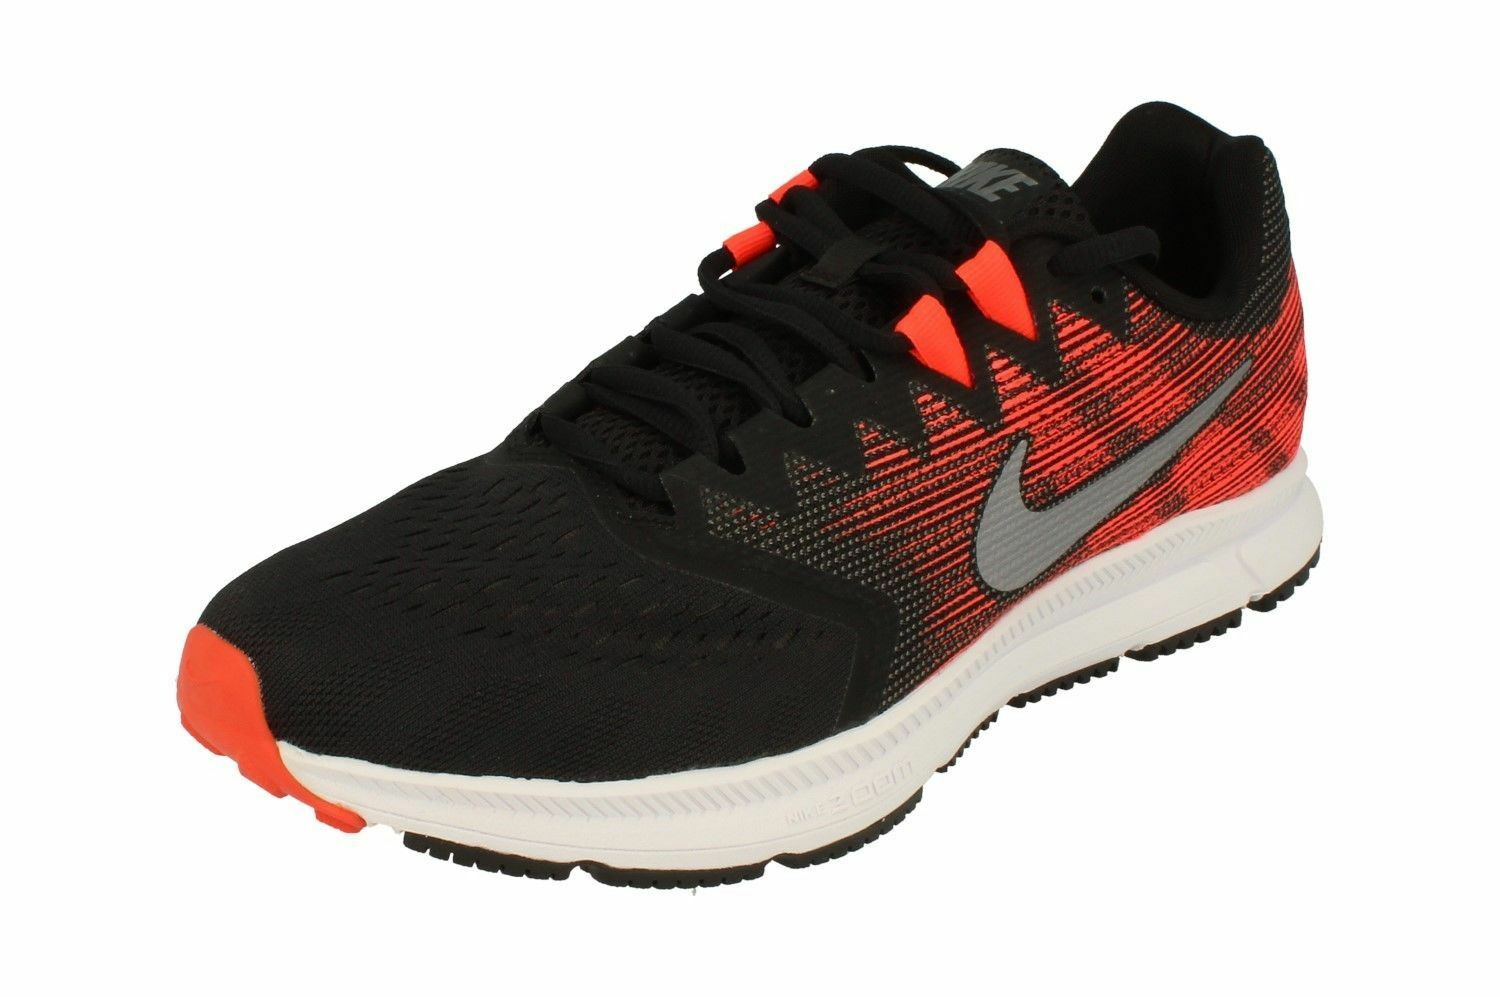 New Nike Zoom Training Span 2 Men's Running Training Zoom Shoes Black/Red 908990 006 f743fc